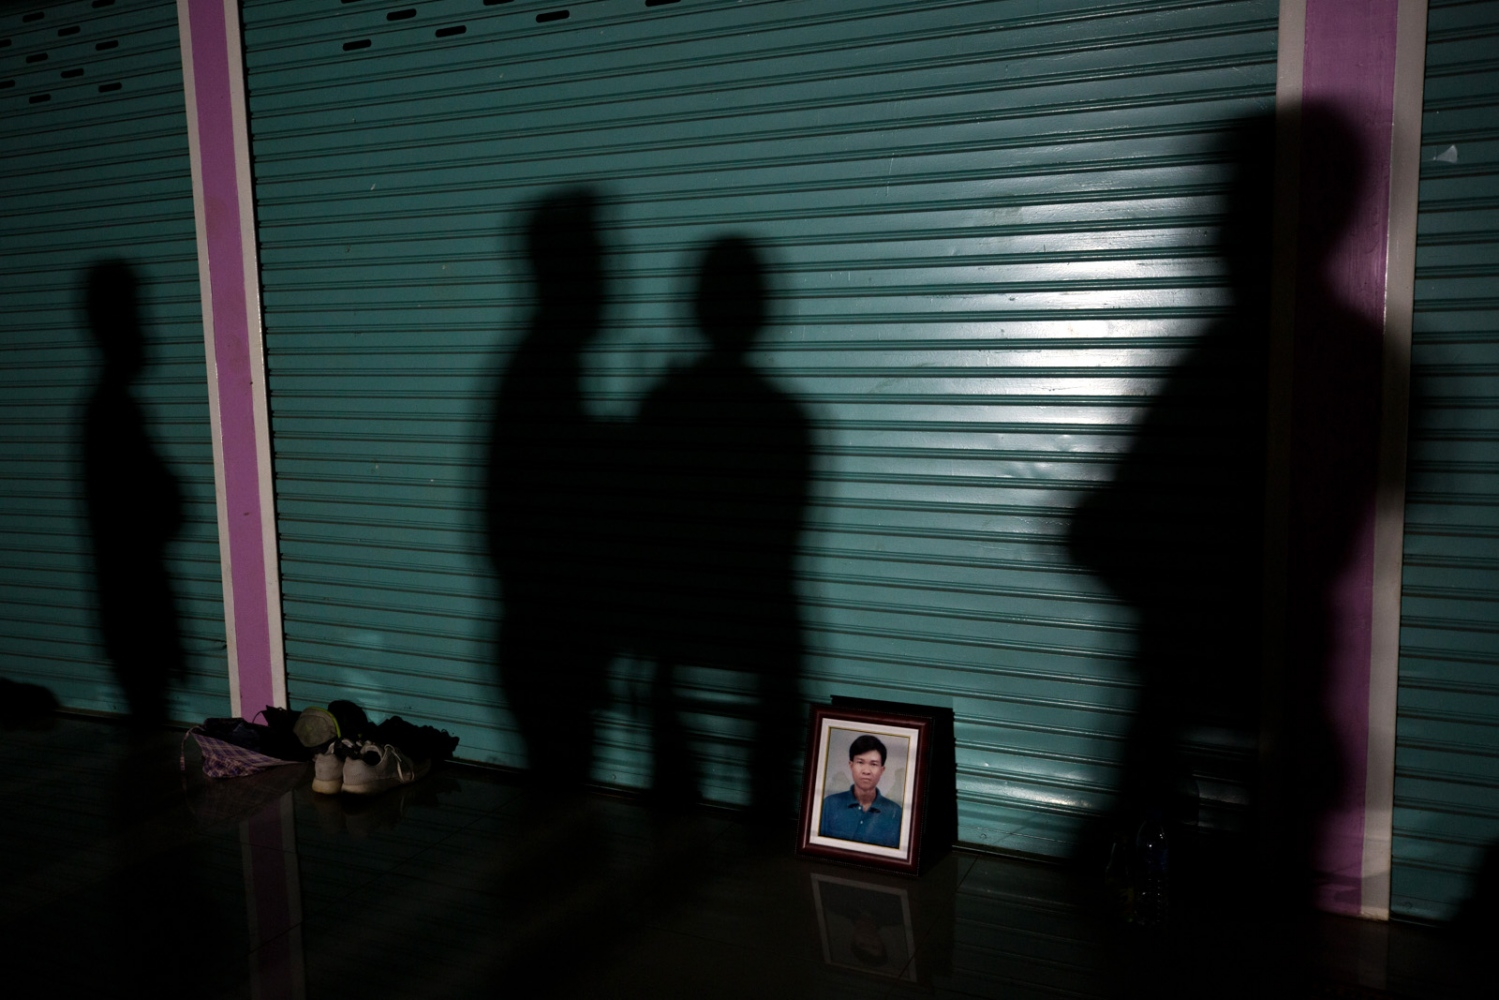 On day 4 the portrait of Nujiam Paisita, who was tragically killed in a car accident is placed against a door where the villagers will sleep for the night. The villagers and family members quickly held a ceremony for his death at his home and decided to carry his portrait every step of the way in his honour.